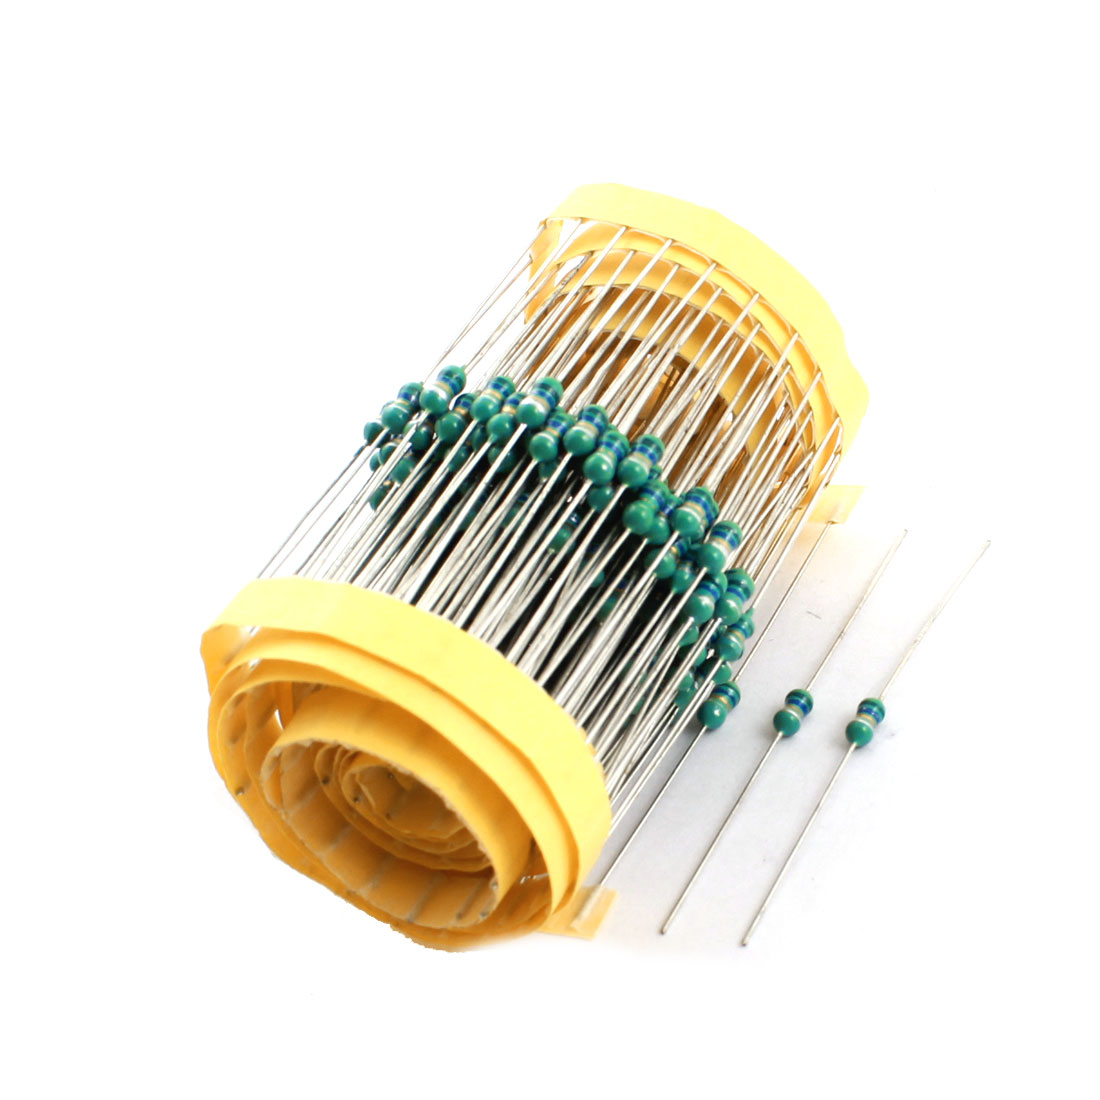 200pcs Through Hole 5.6uH 3x7mm 0307 1/4W 10% Axial Leaded Color Ring Inductors for PCB Board